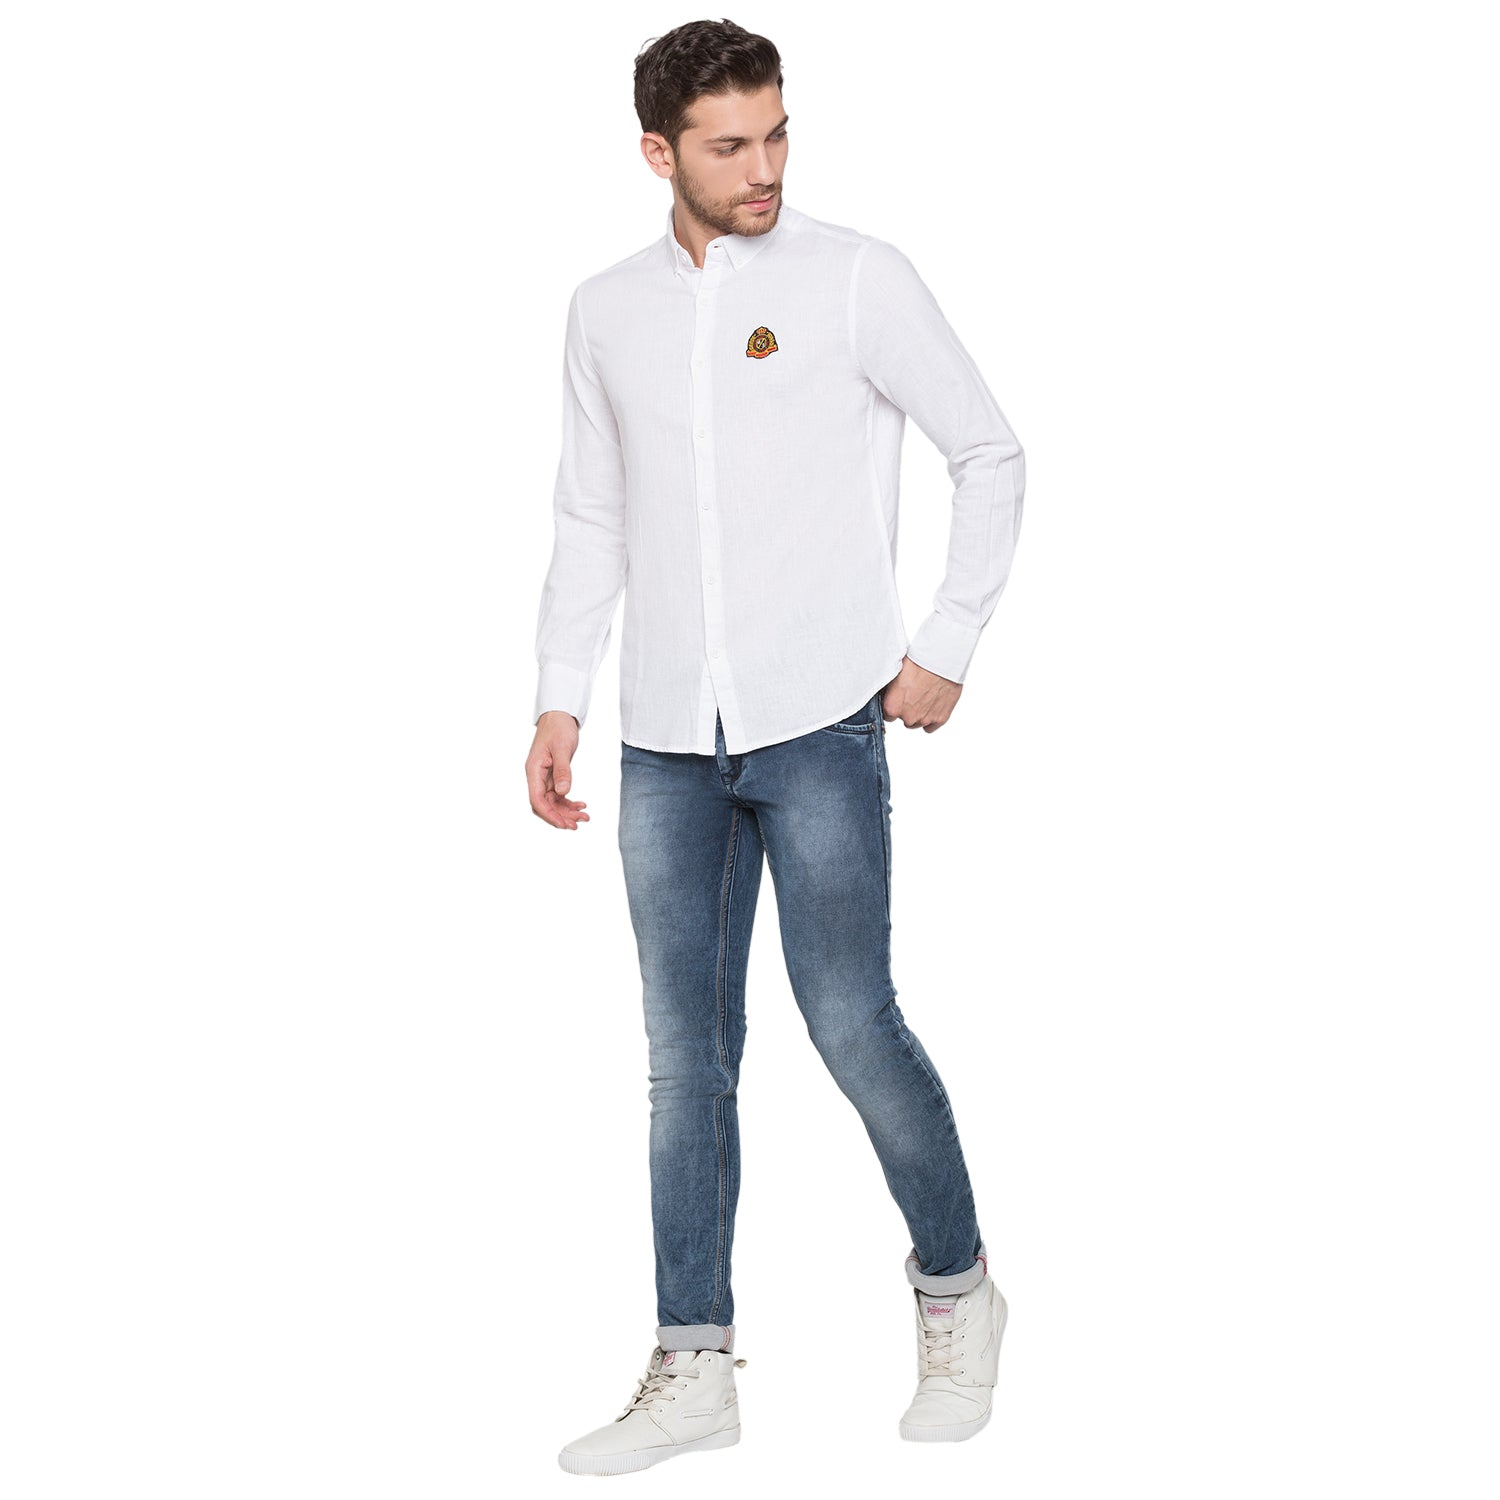 Globus White Solid Shirt4